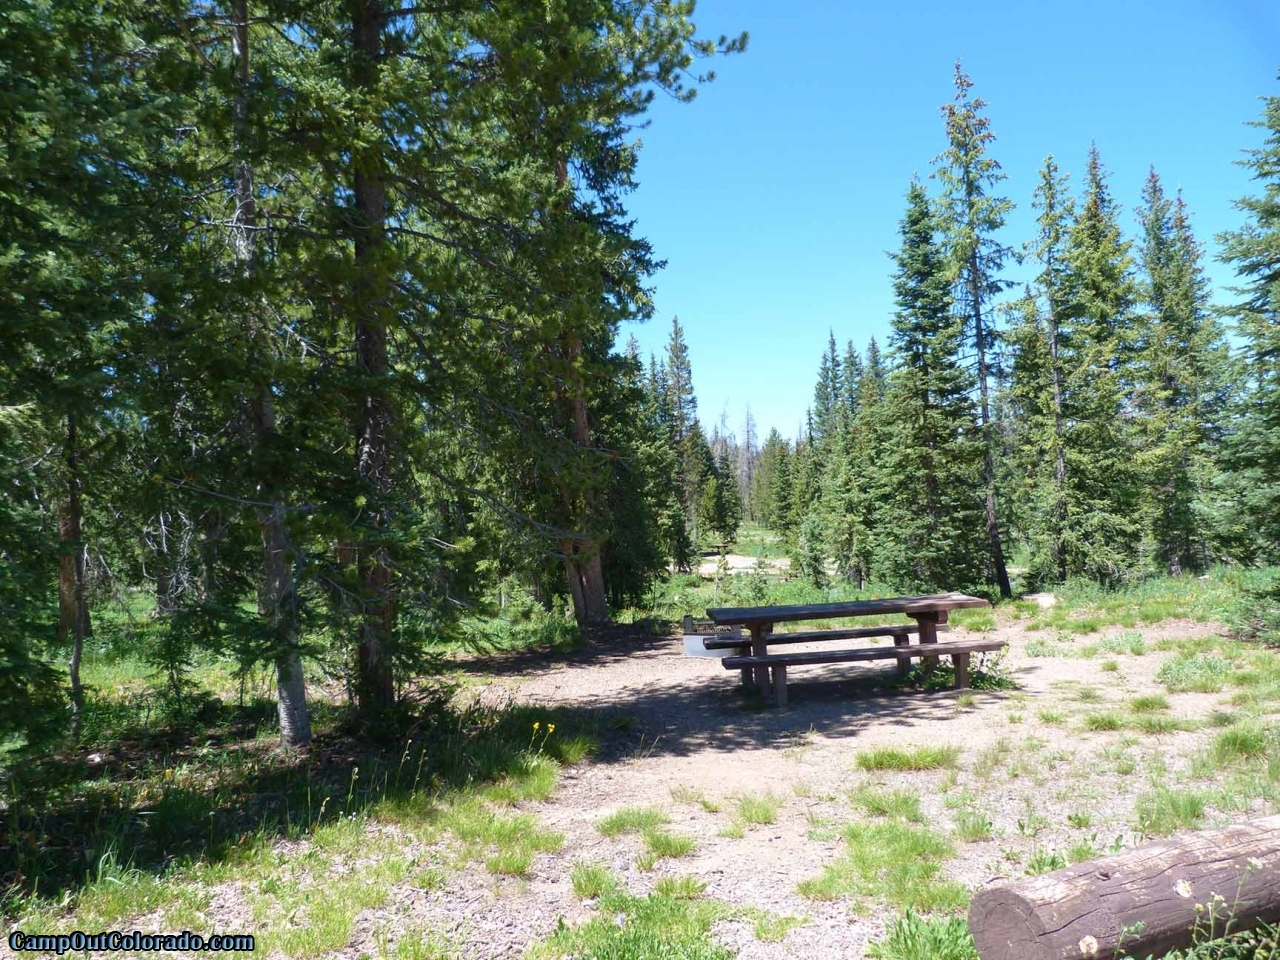 campoutcolorado-meadows-campground-rabbit-ears-trees